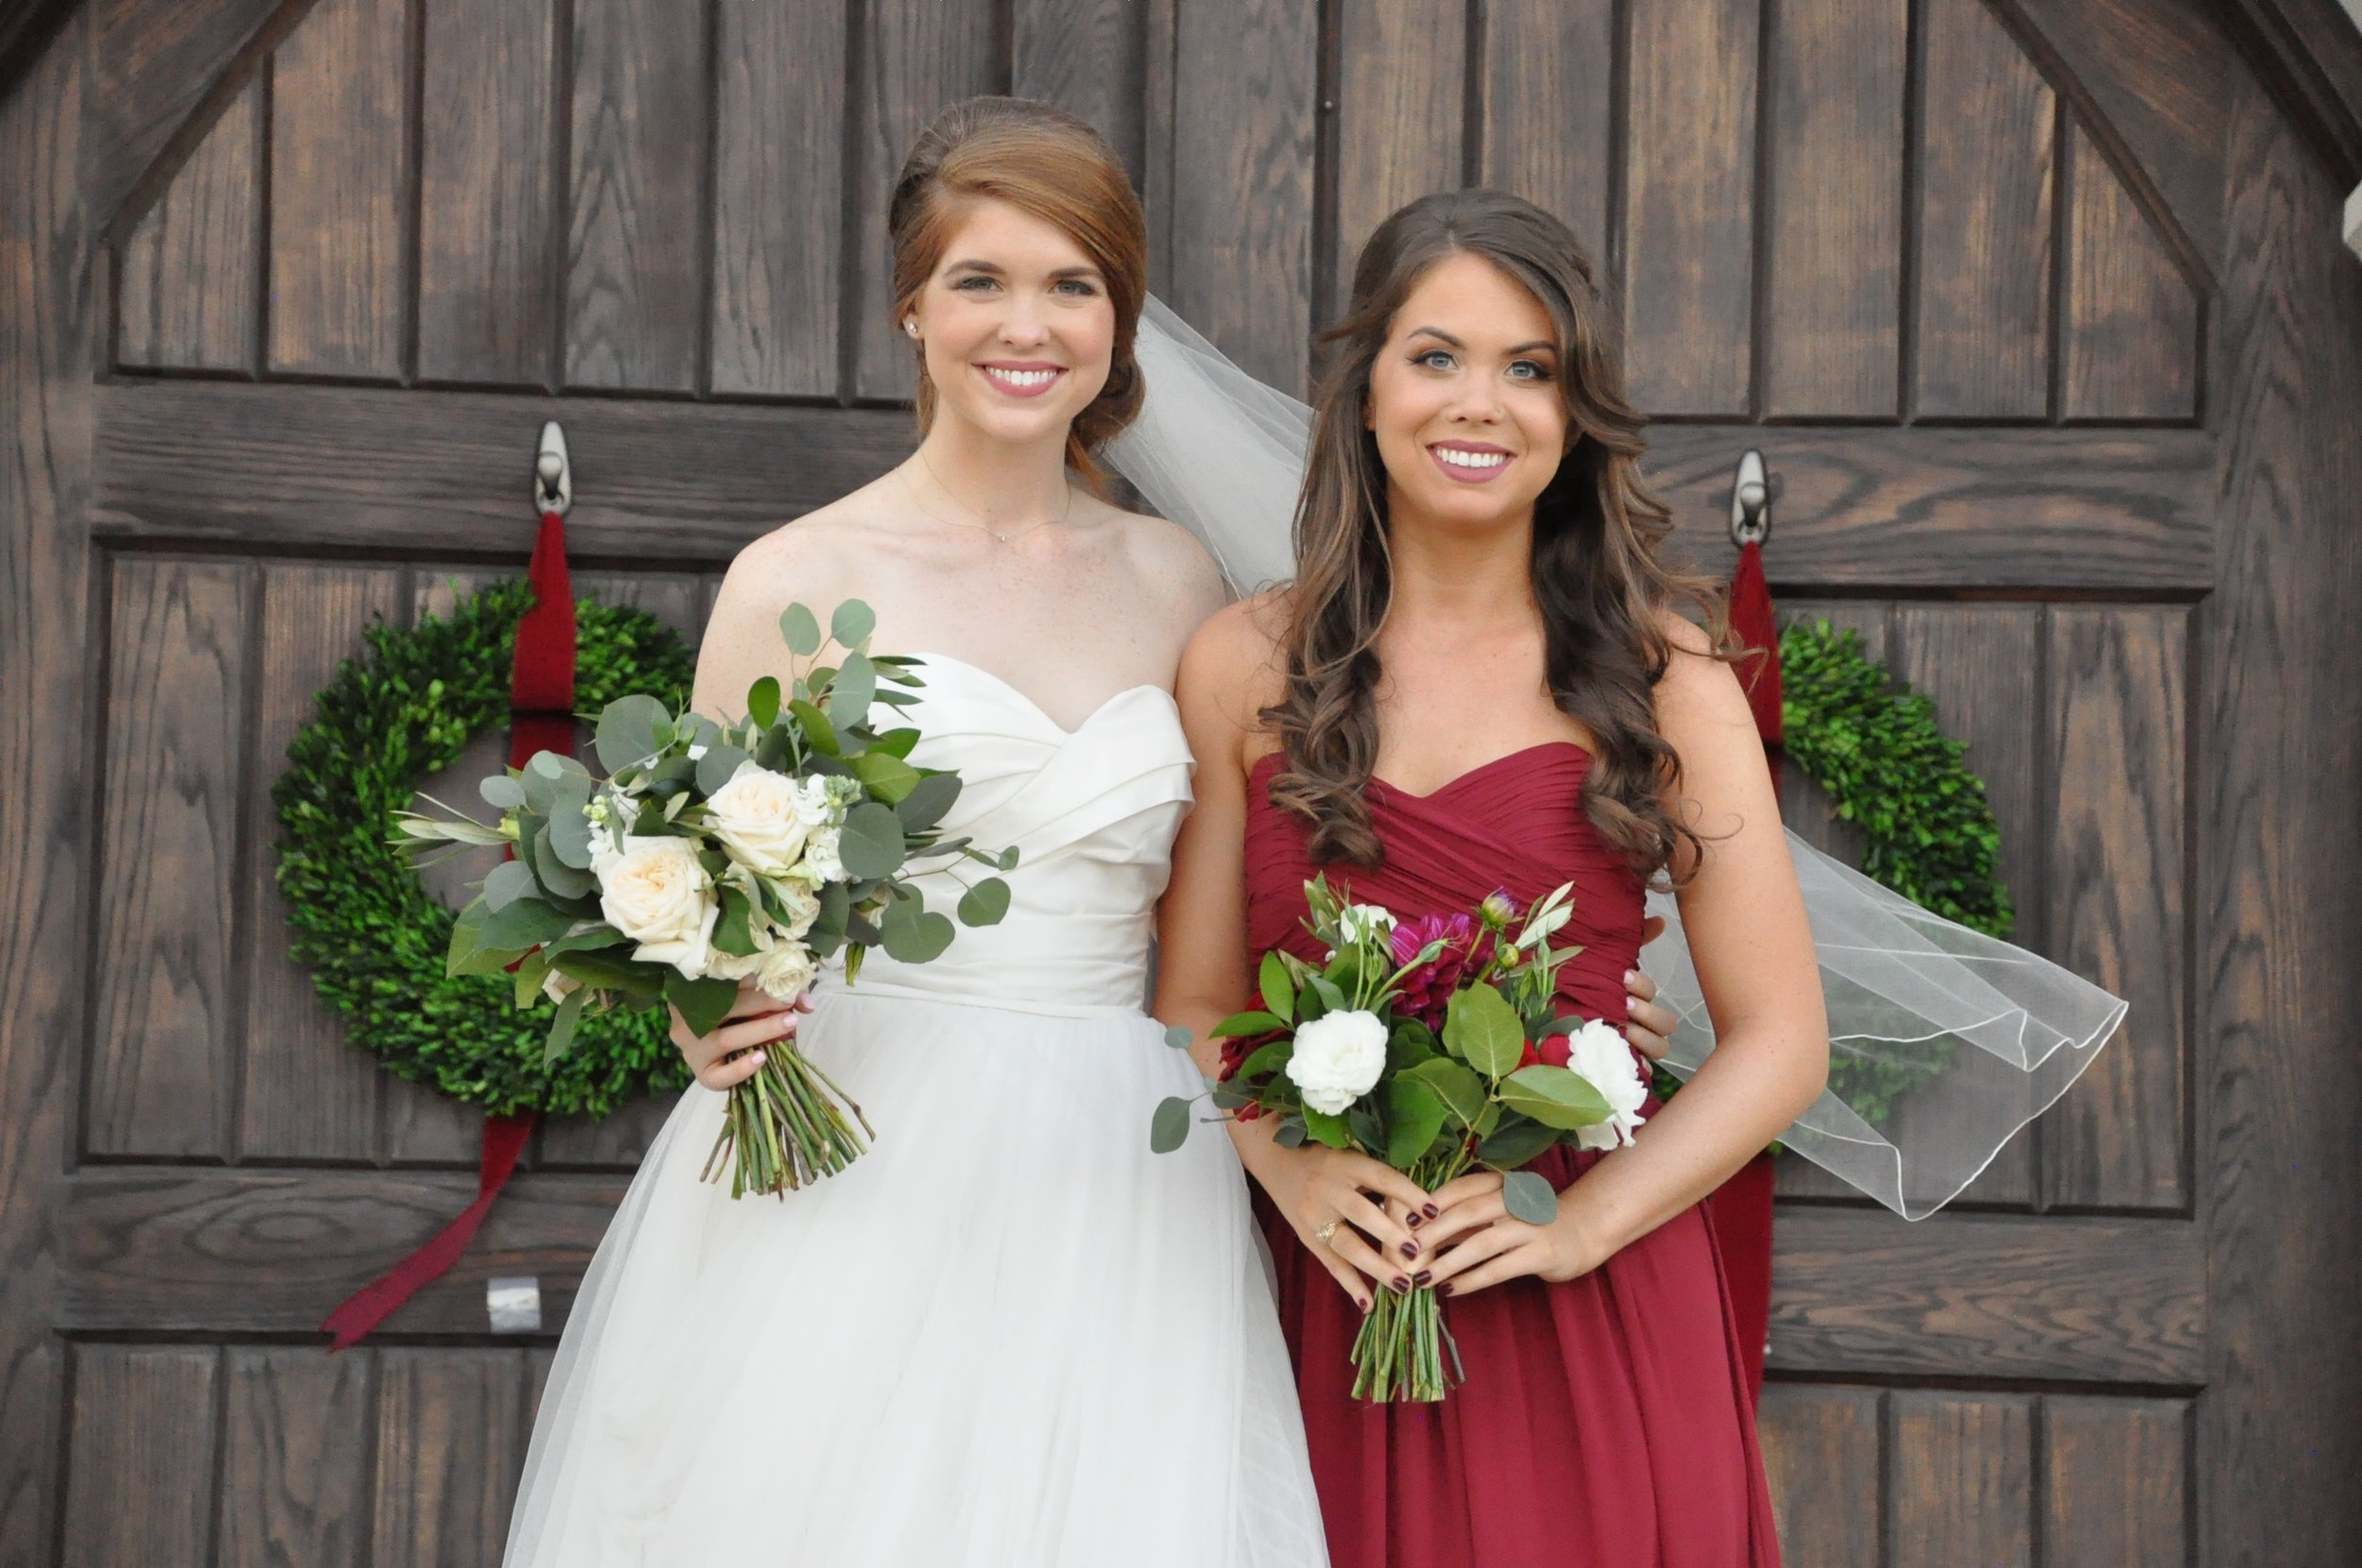 brideside, where to get bridesmaid dresses, the castle at rockwall, heidi lockhart somes photography,  the castle at rockwall, lizzie bee's flower shoppe, grand slam glam, easy ways to get bridesmaid dresses